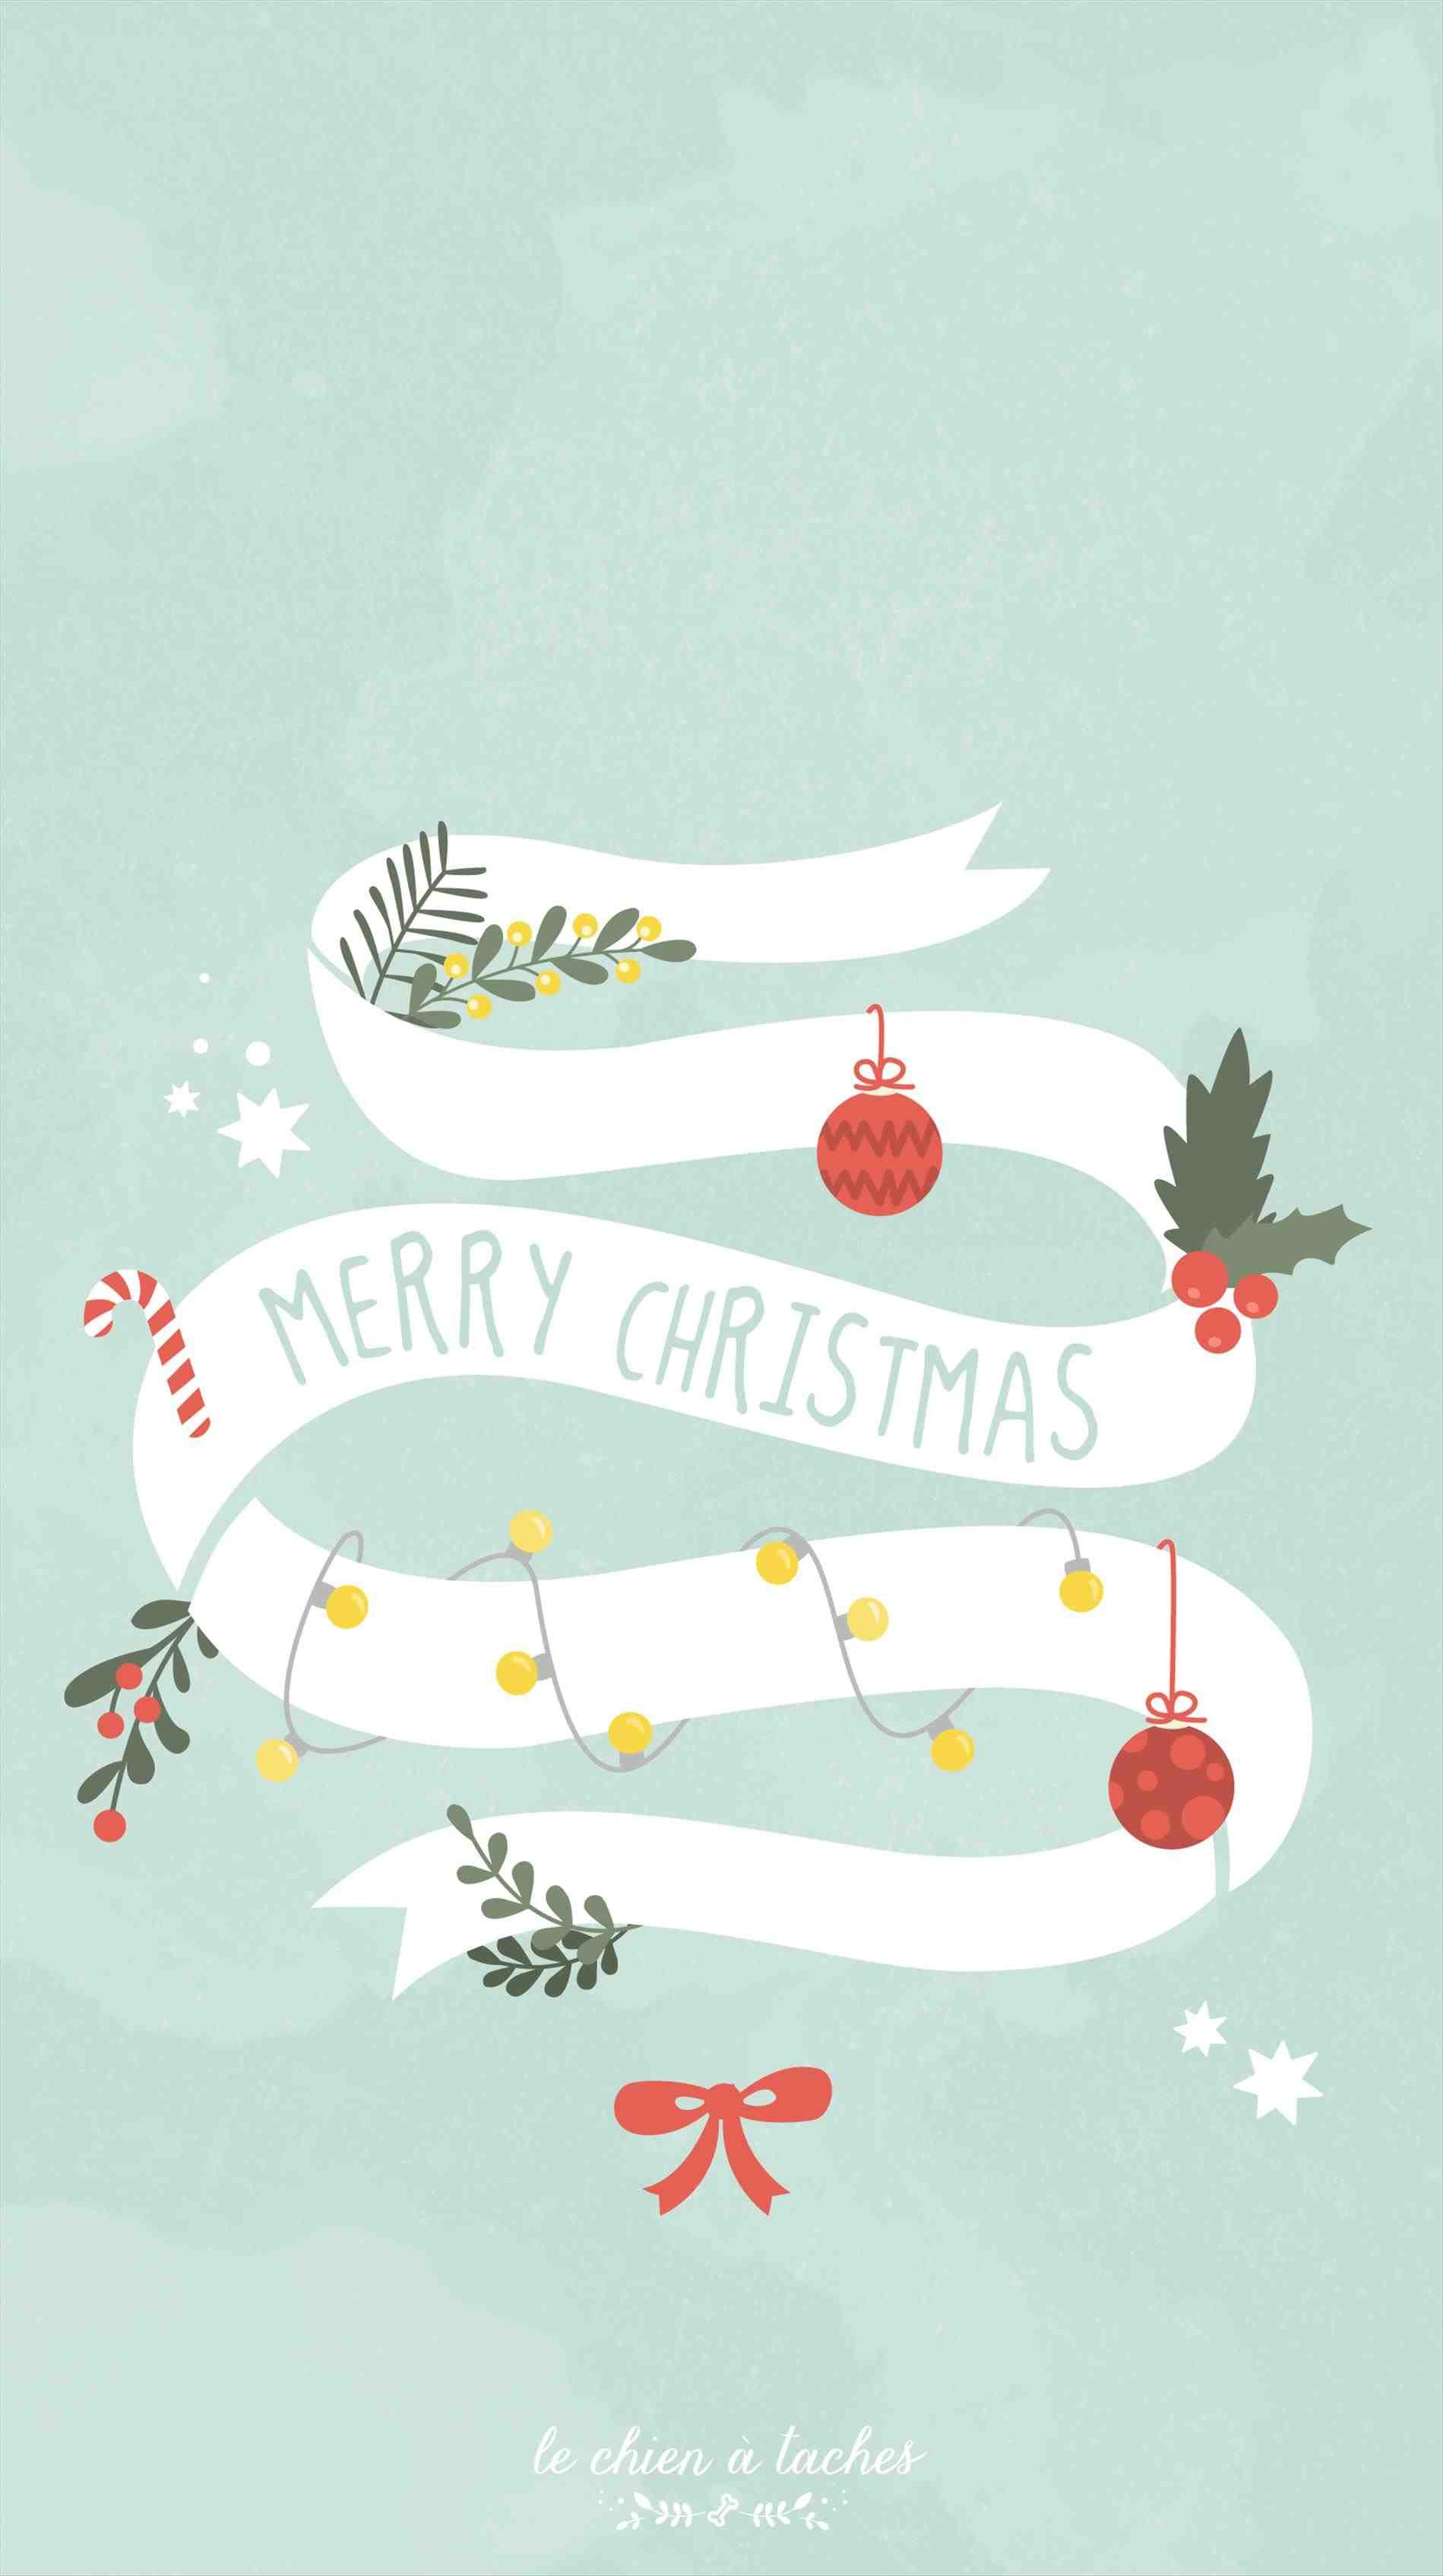 Download Christmas Wallpaper Cute